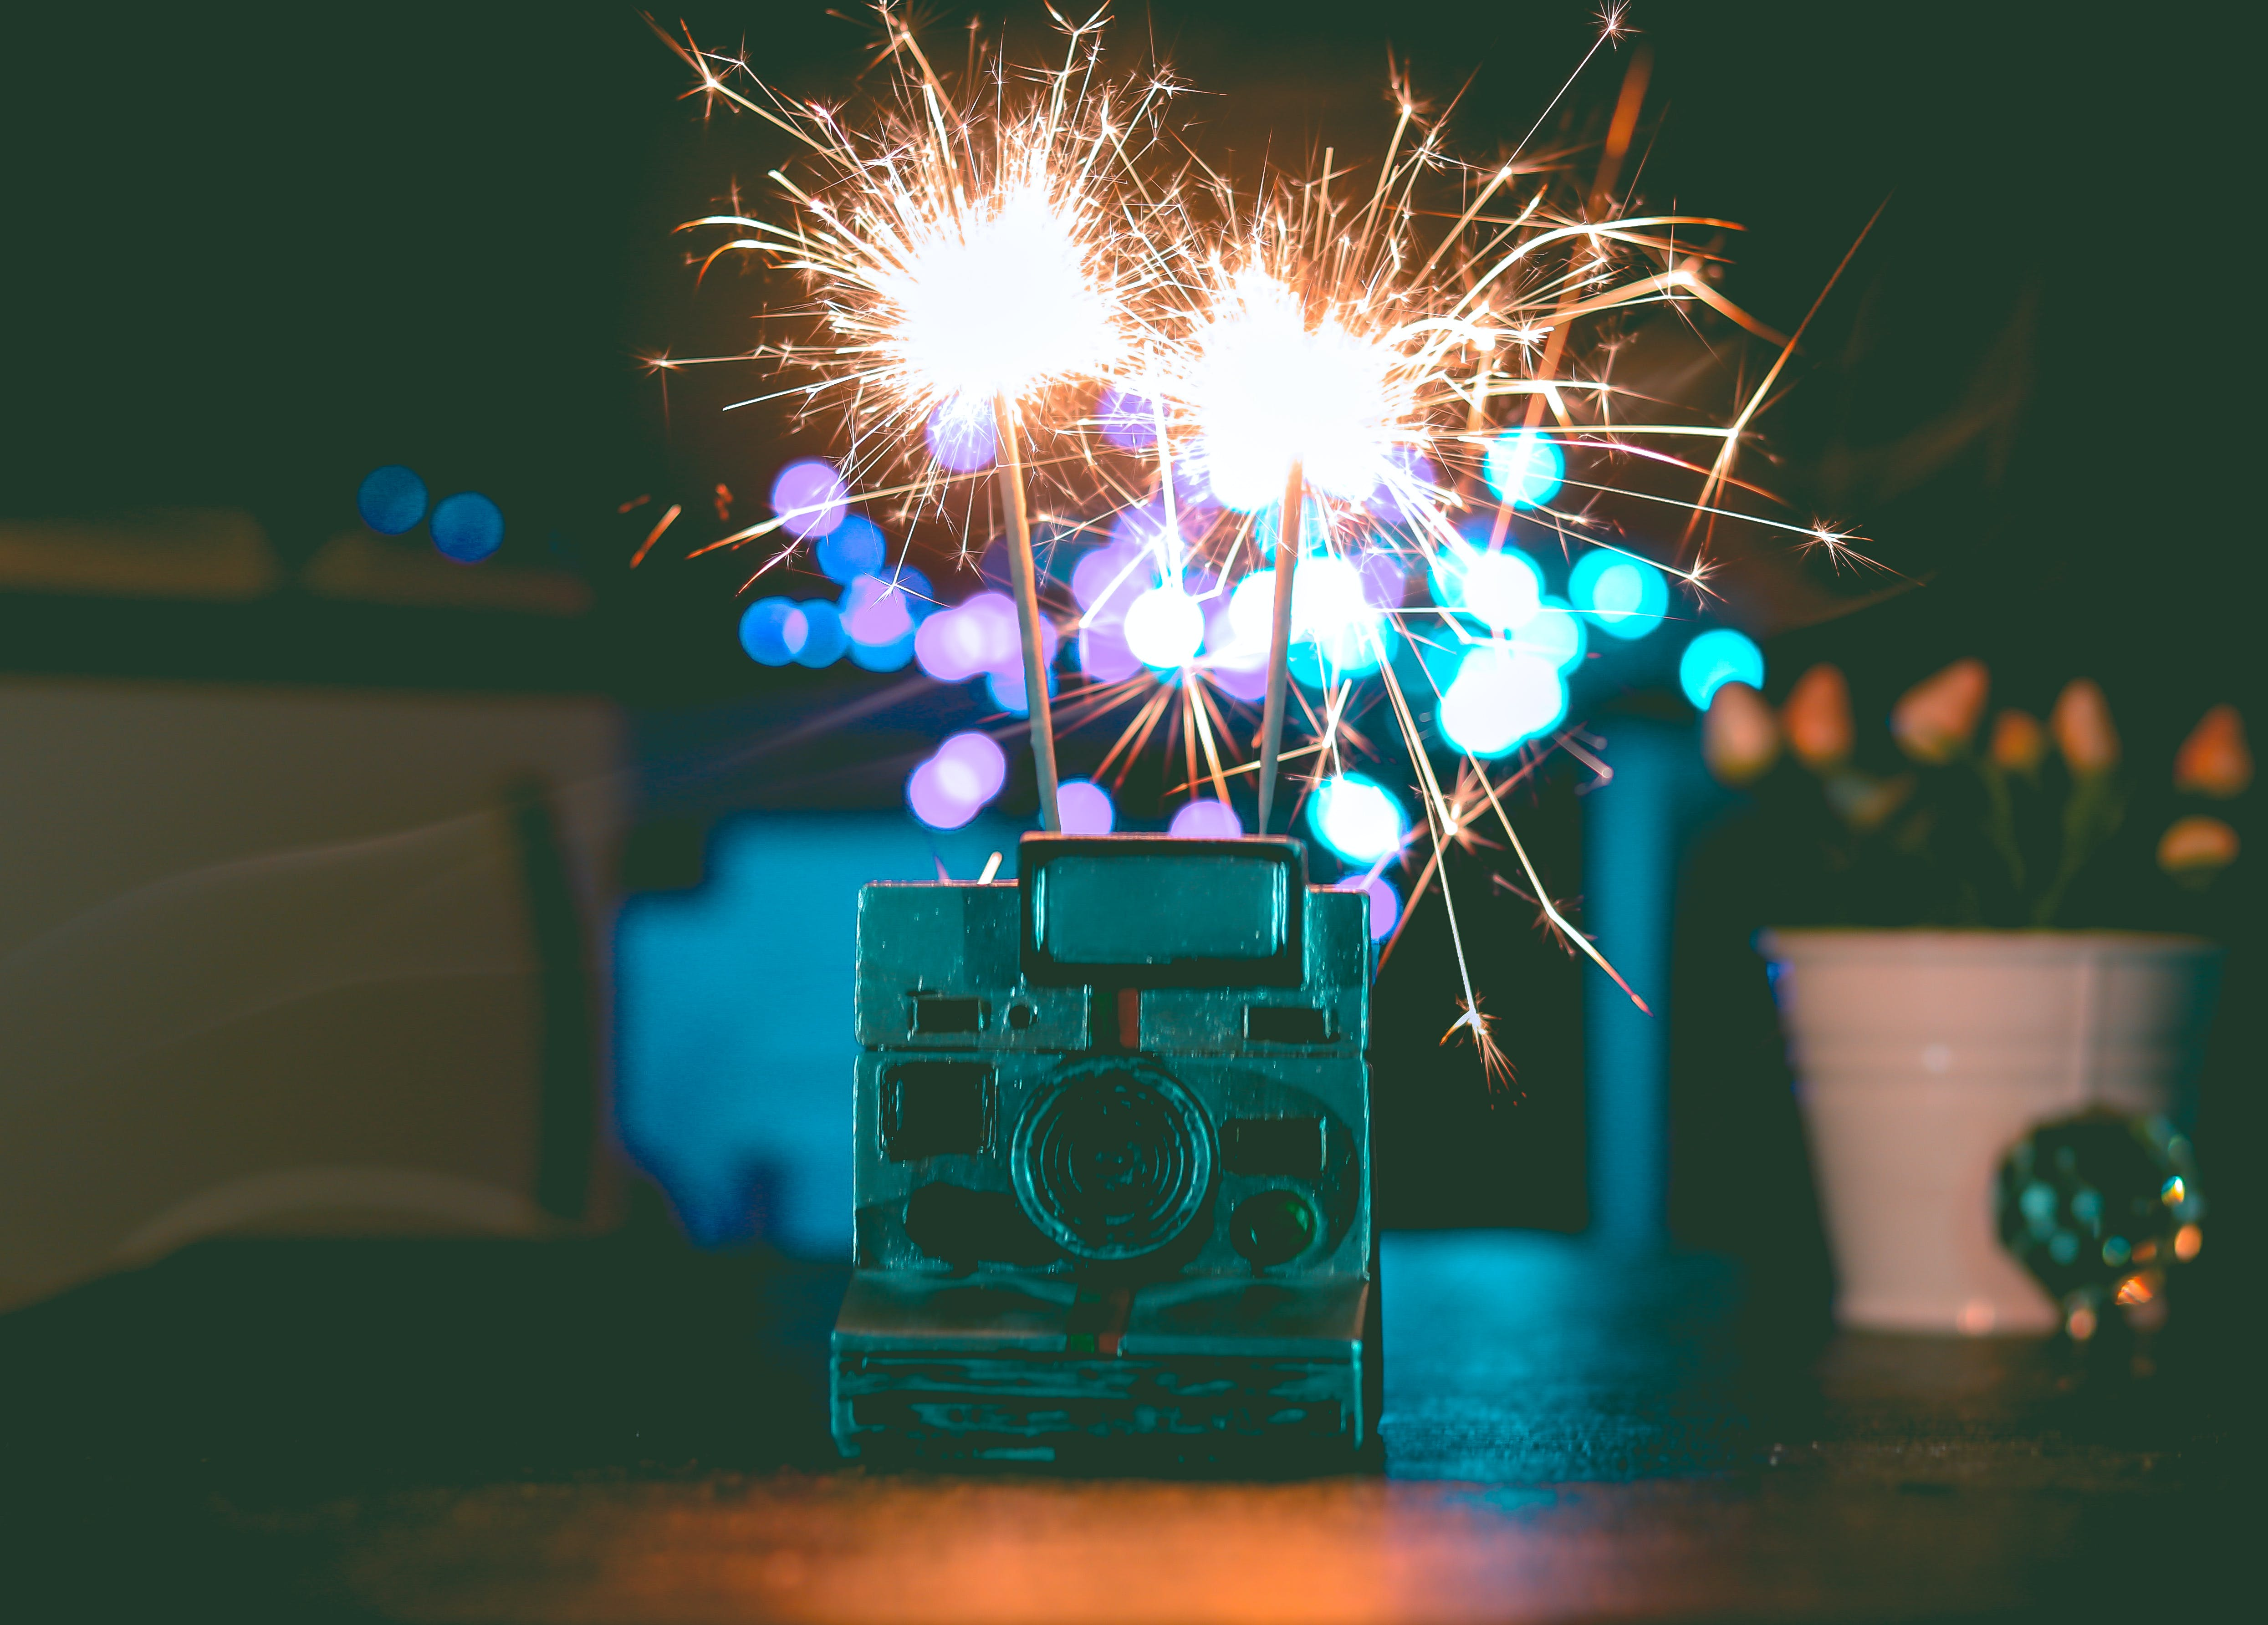 Polaroid Camera And Fireworks